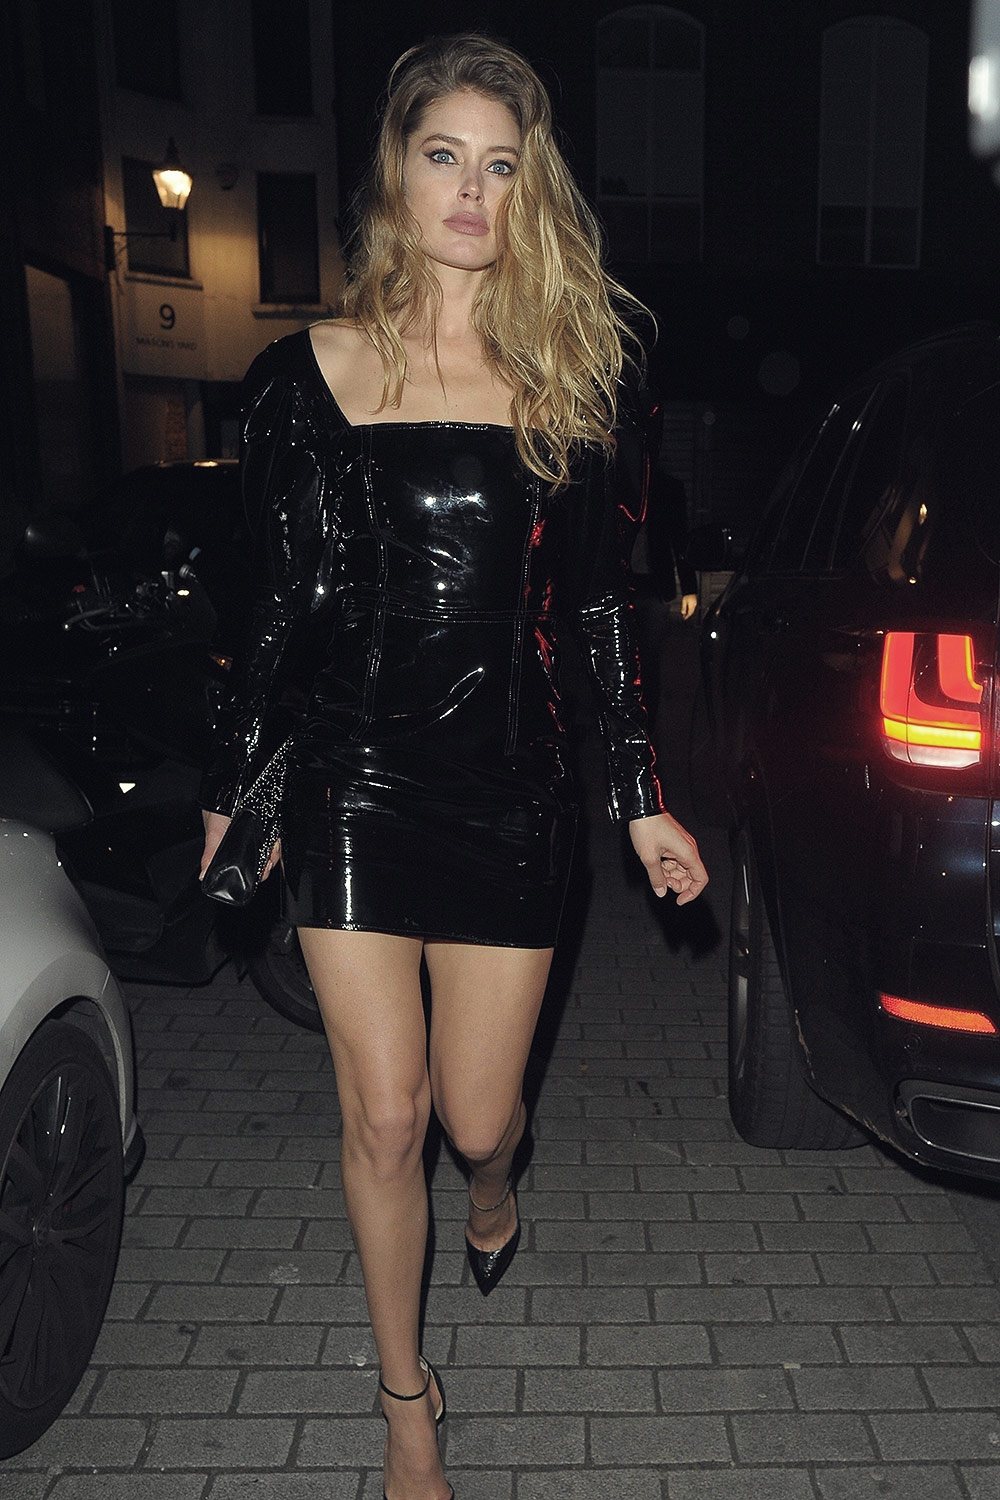 Doutzen Kroes attends Miuccia Prada party